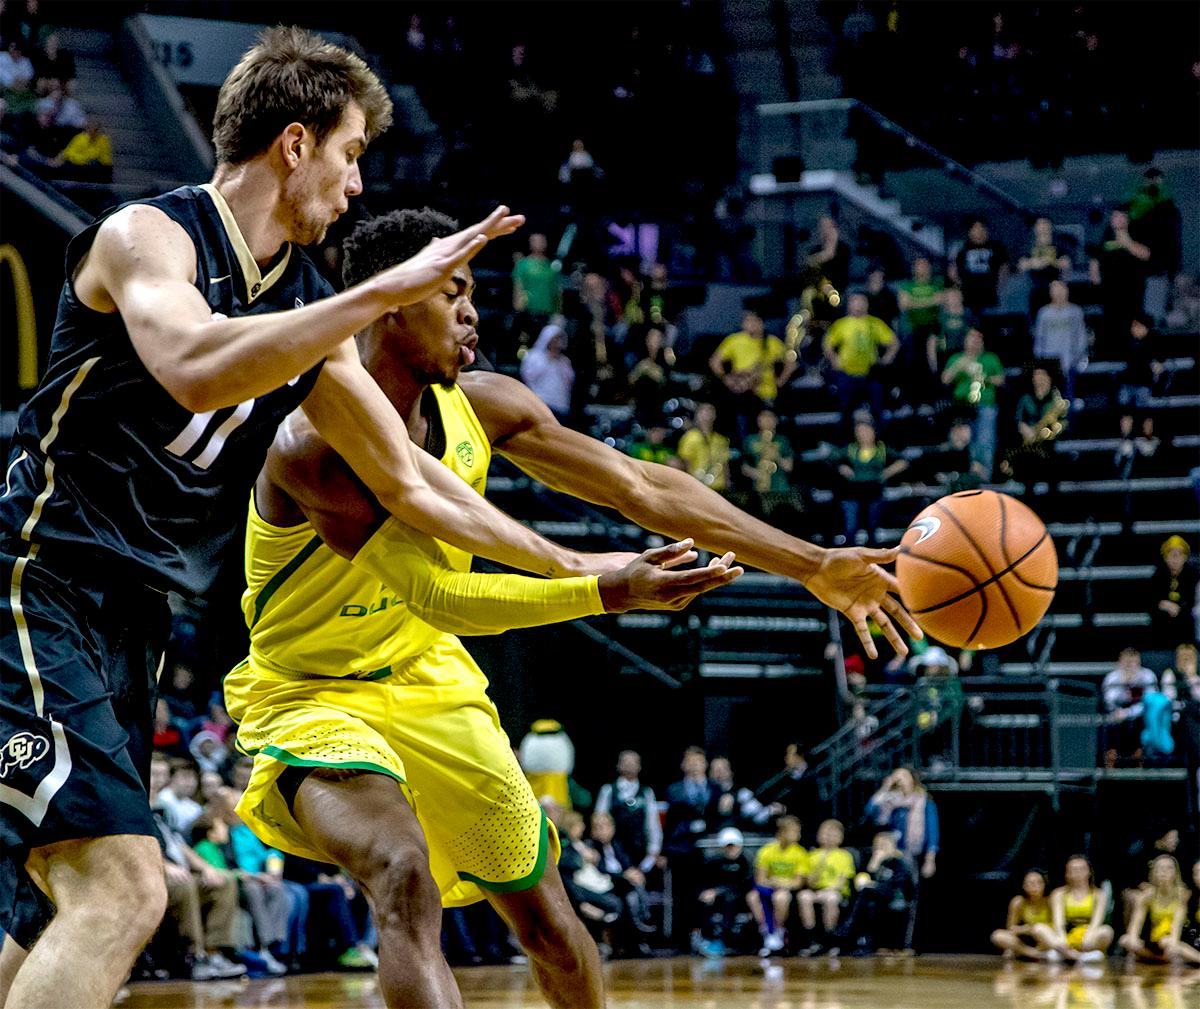 The Duck's Victor Bailey Jr. (#10) tosses the ball aside to a teammate. The Oregon Ducks defeated the Colorado Buffaloes 77-62 at Matthew Knight Arena on Sunday. Troy Brown had a season-high score of 21 points, Elijah Brown added 17, while Kenny Wooten and Payton Pritchard added 13 and 12 respectively. Oregon is now 1-1 in conference play. The Ducks next face off against the Oregon State Beavers in Corvallis on Friday, January 5th. Photo by August Frank, Oregon News Lab